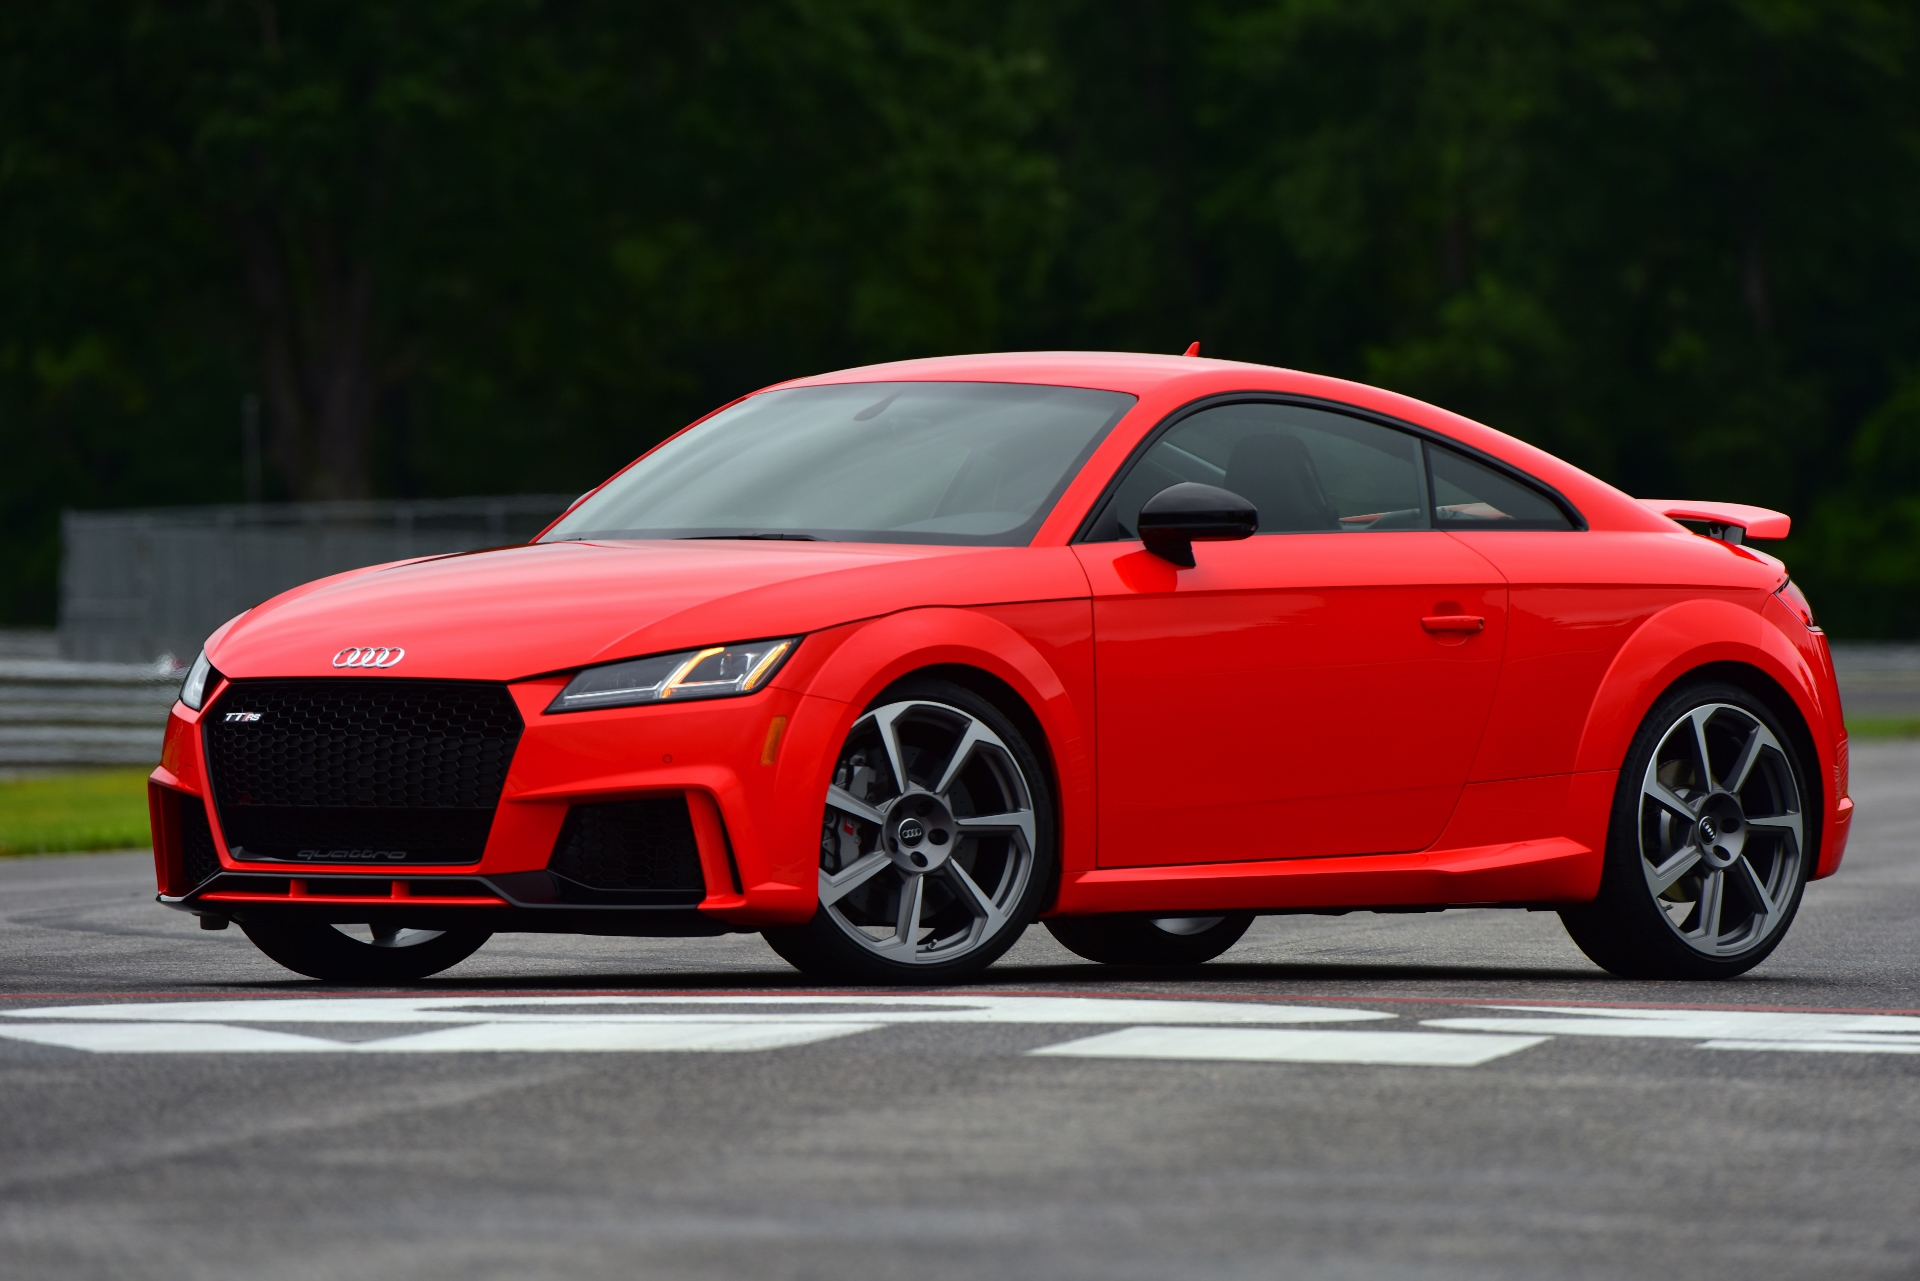 83 All New 2019 Audi Tt Rs Images